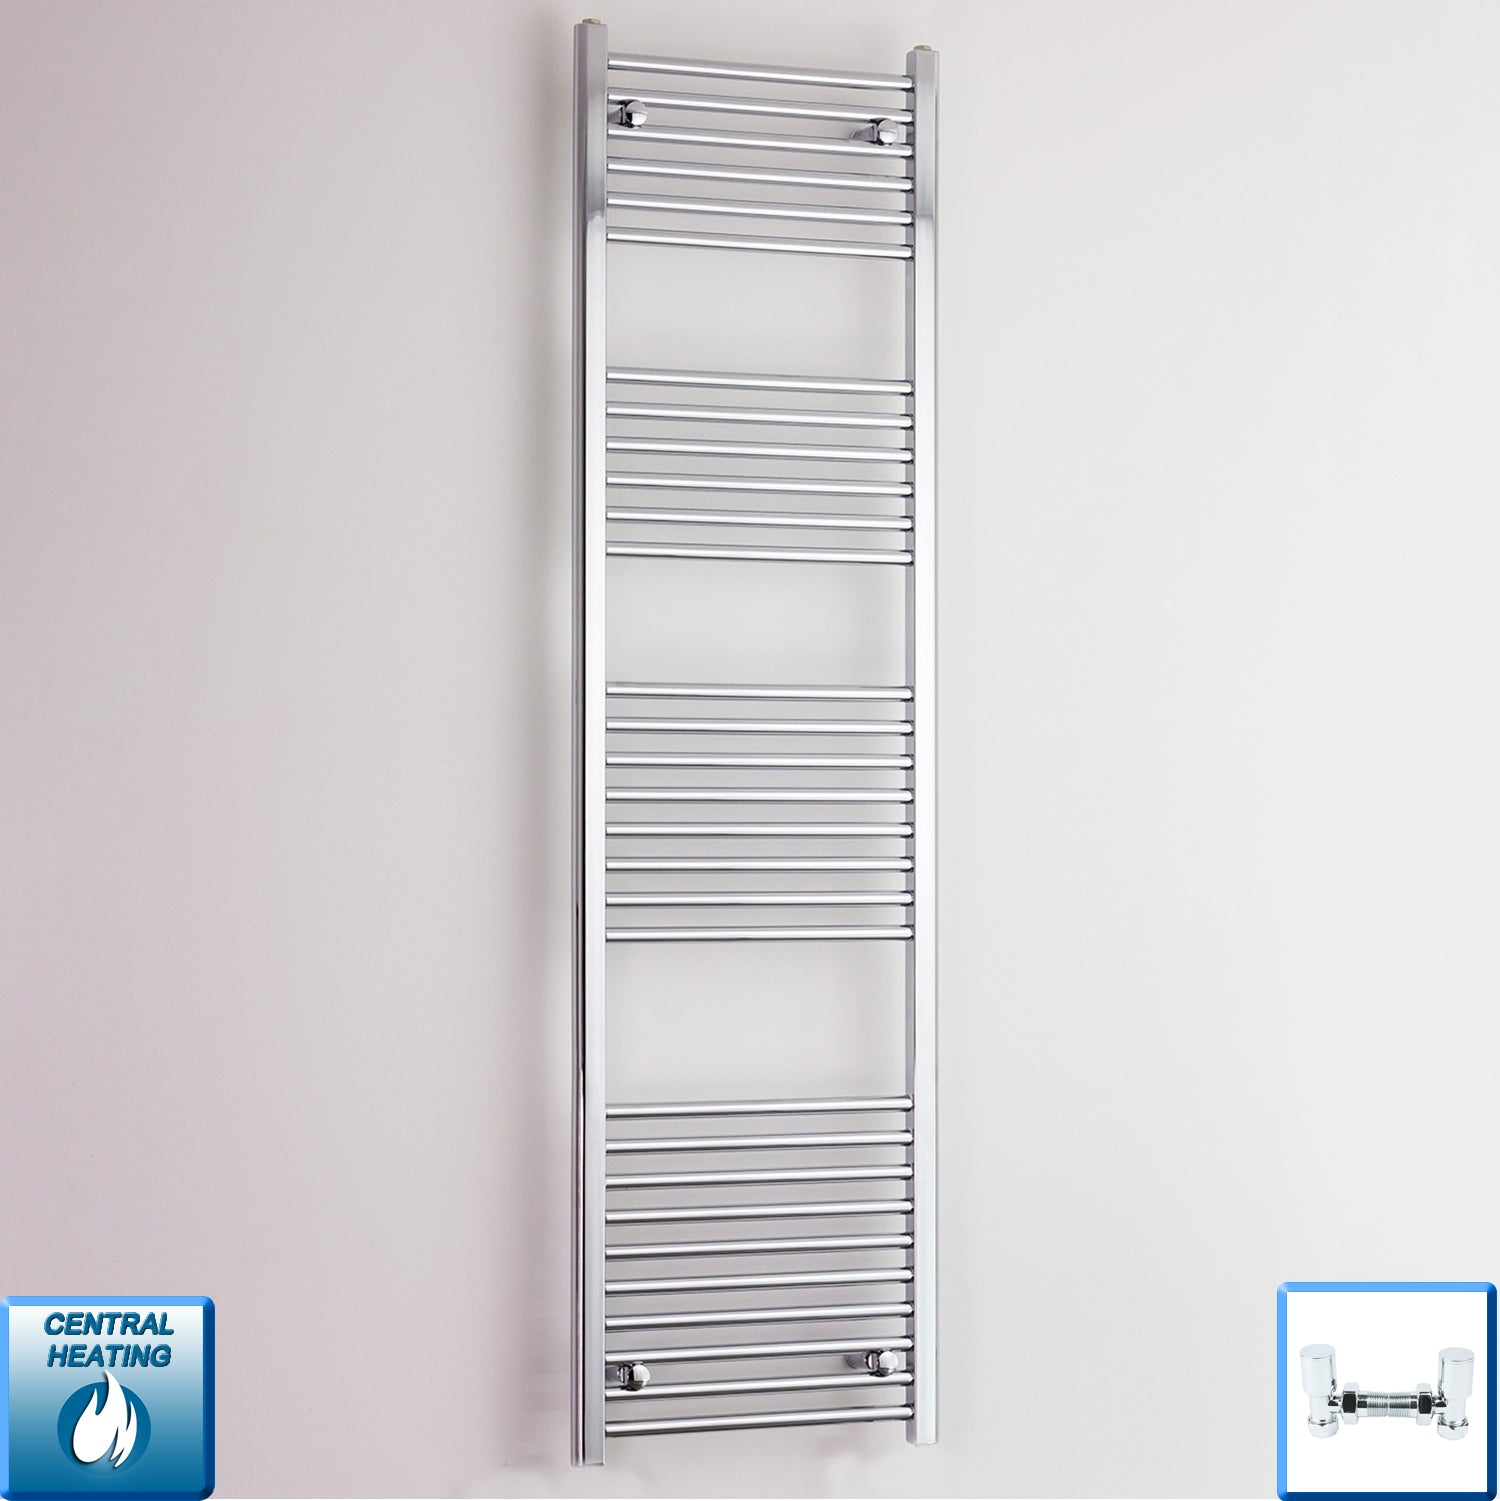 400mm Wide 1800mm High Chrome Towel Rail Radiator With Angled Valve